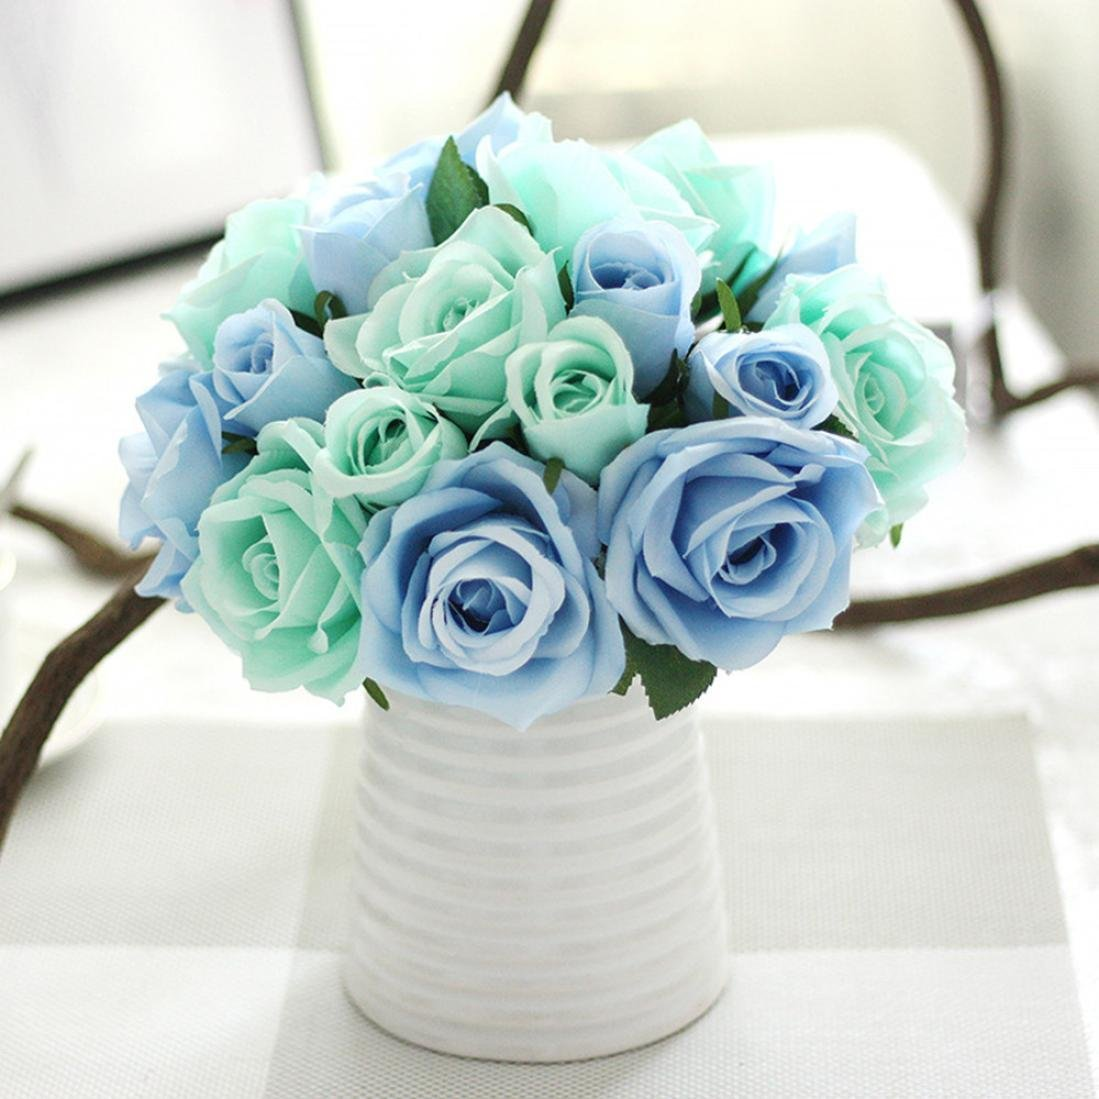 Cheap bouquet blue flowers find bouquet blue flowers deals on line get quotations amatm 9 heads artificial rose silk flowers leaf bridal wedding party bouquet home izmirmasajfo